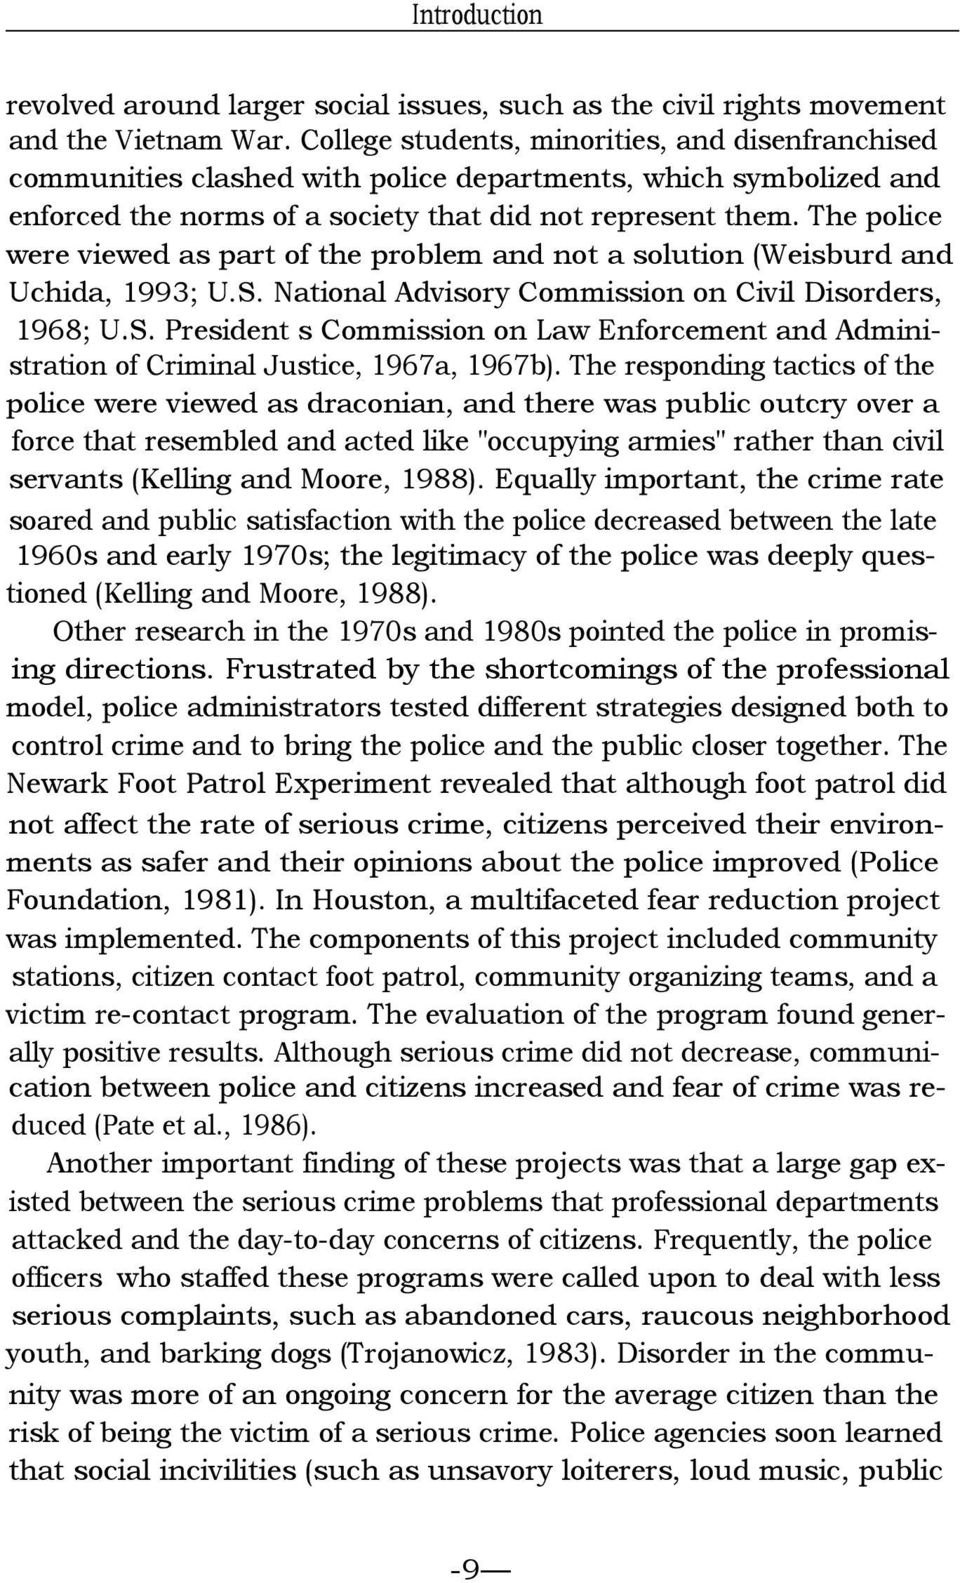 The police were viewed as part of the problem and not a solution (Weisburd and Uchida, 1993; U.S. National Advisory Commission on Civil Disorders, 1968; U.S. President s Commission on Law Enforcement and Administration of Criminal Justice, 1967a, 1967b).